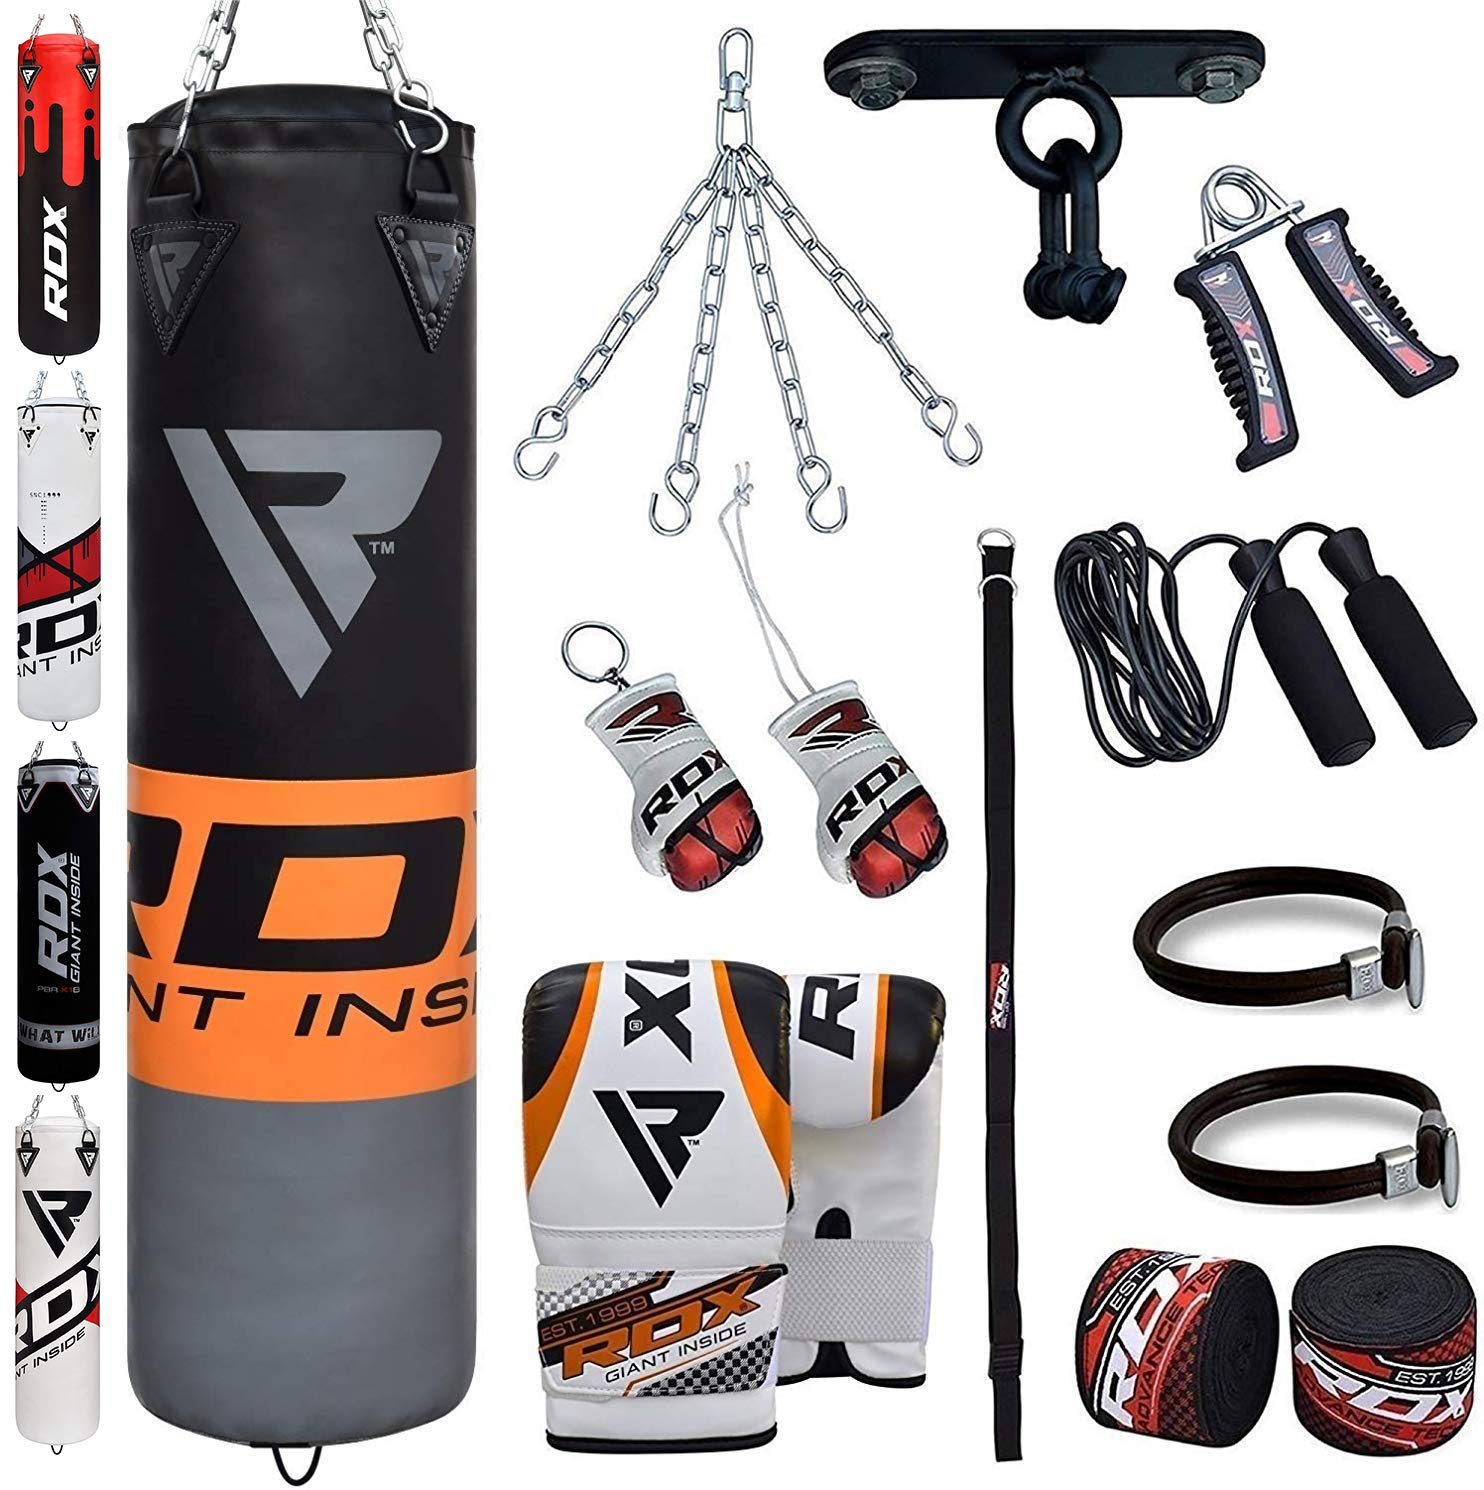 Kickboxing Training Bag 5FT Filled Heavy Boxing Punch Bag Buyer Build,MMA